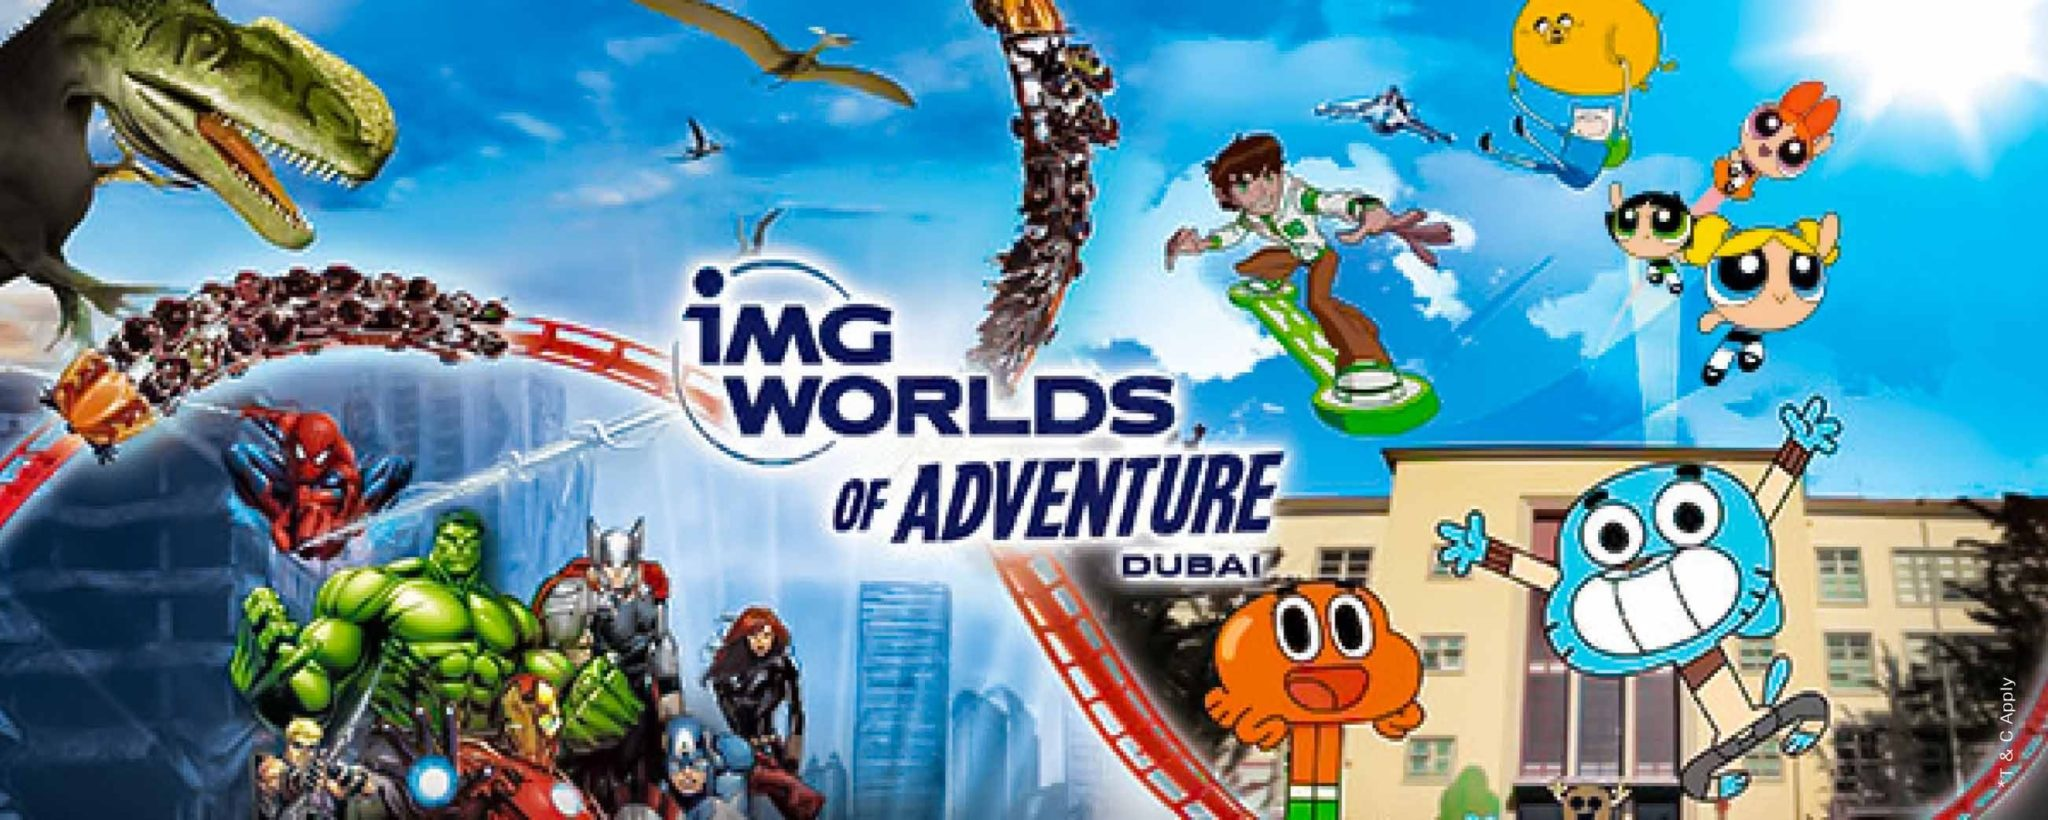 book-img-worlds-of-adventure-and-ski-dubai-best-offers-in-dubai